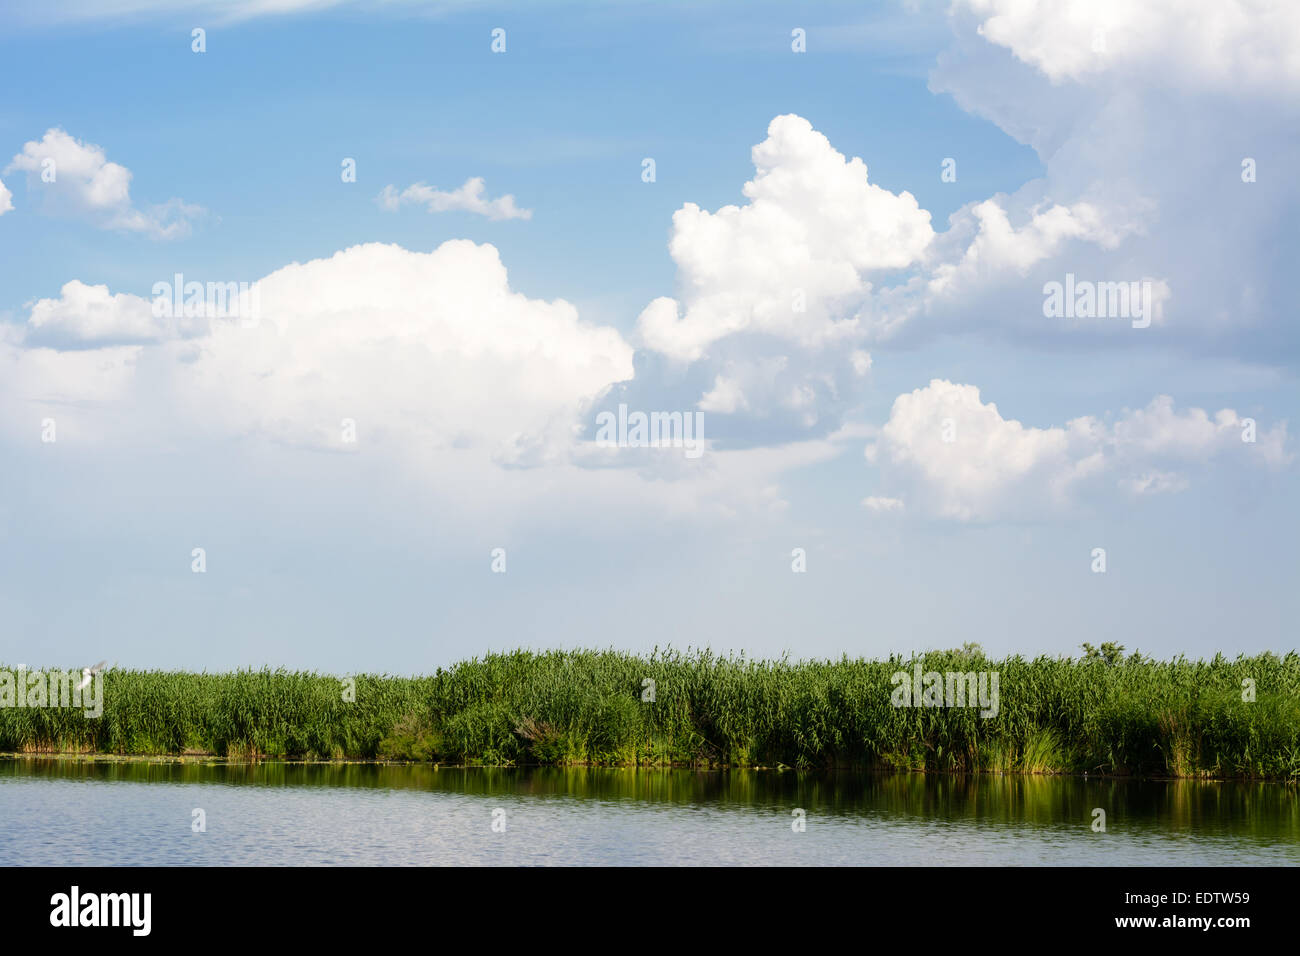 Blue skies with clouds above the water, river bulrush - Stock Image